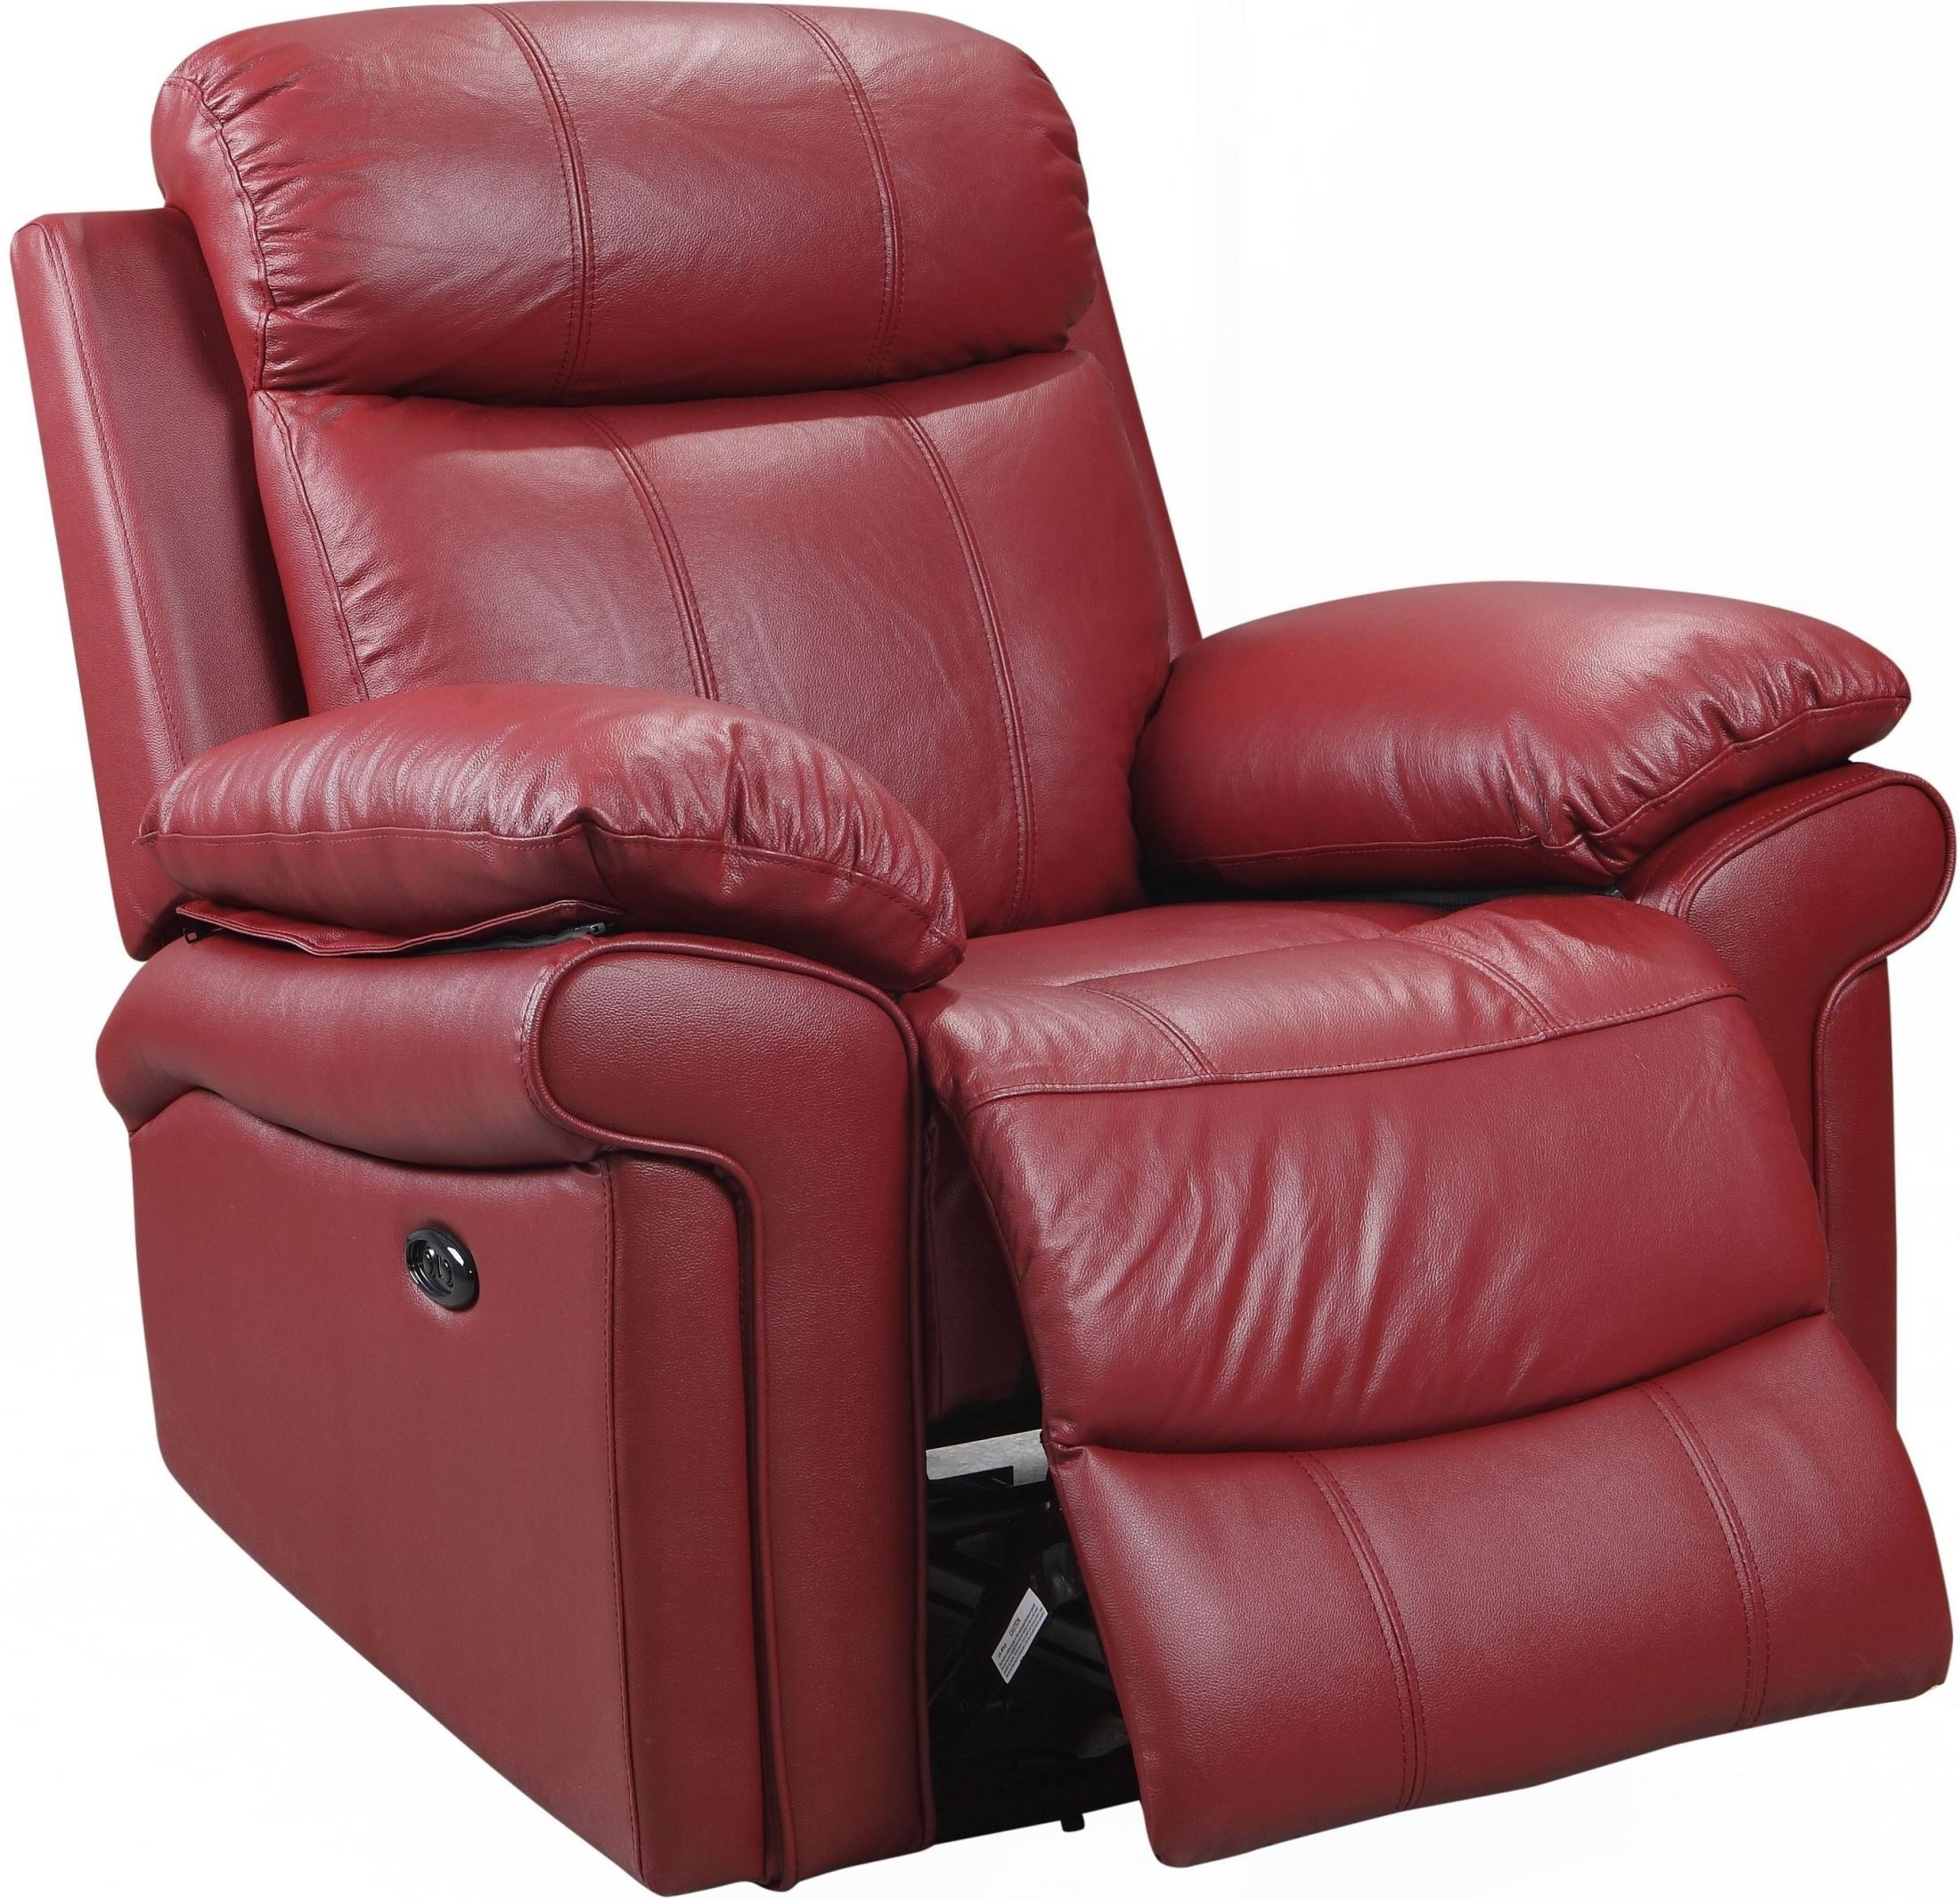 Shae Joplin Red Leather Power Reclining Chair from Leather